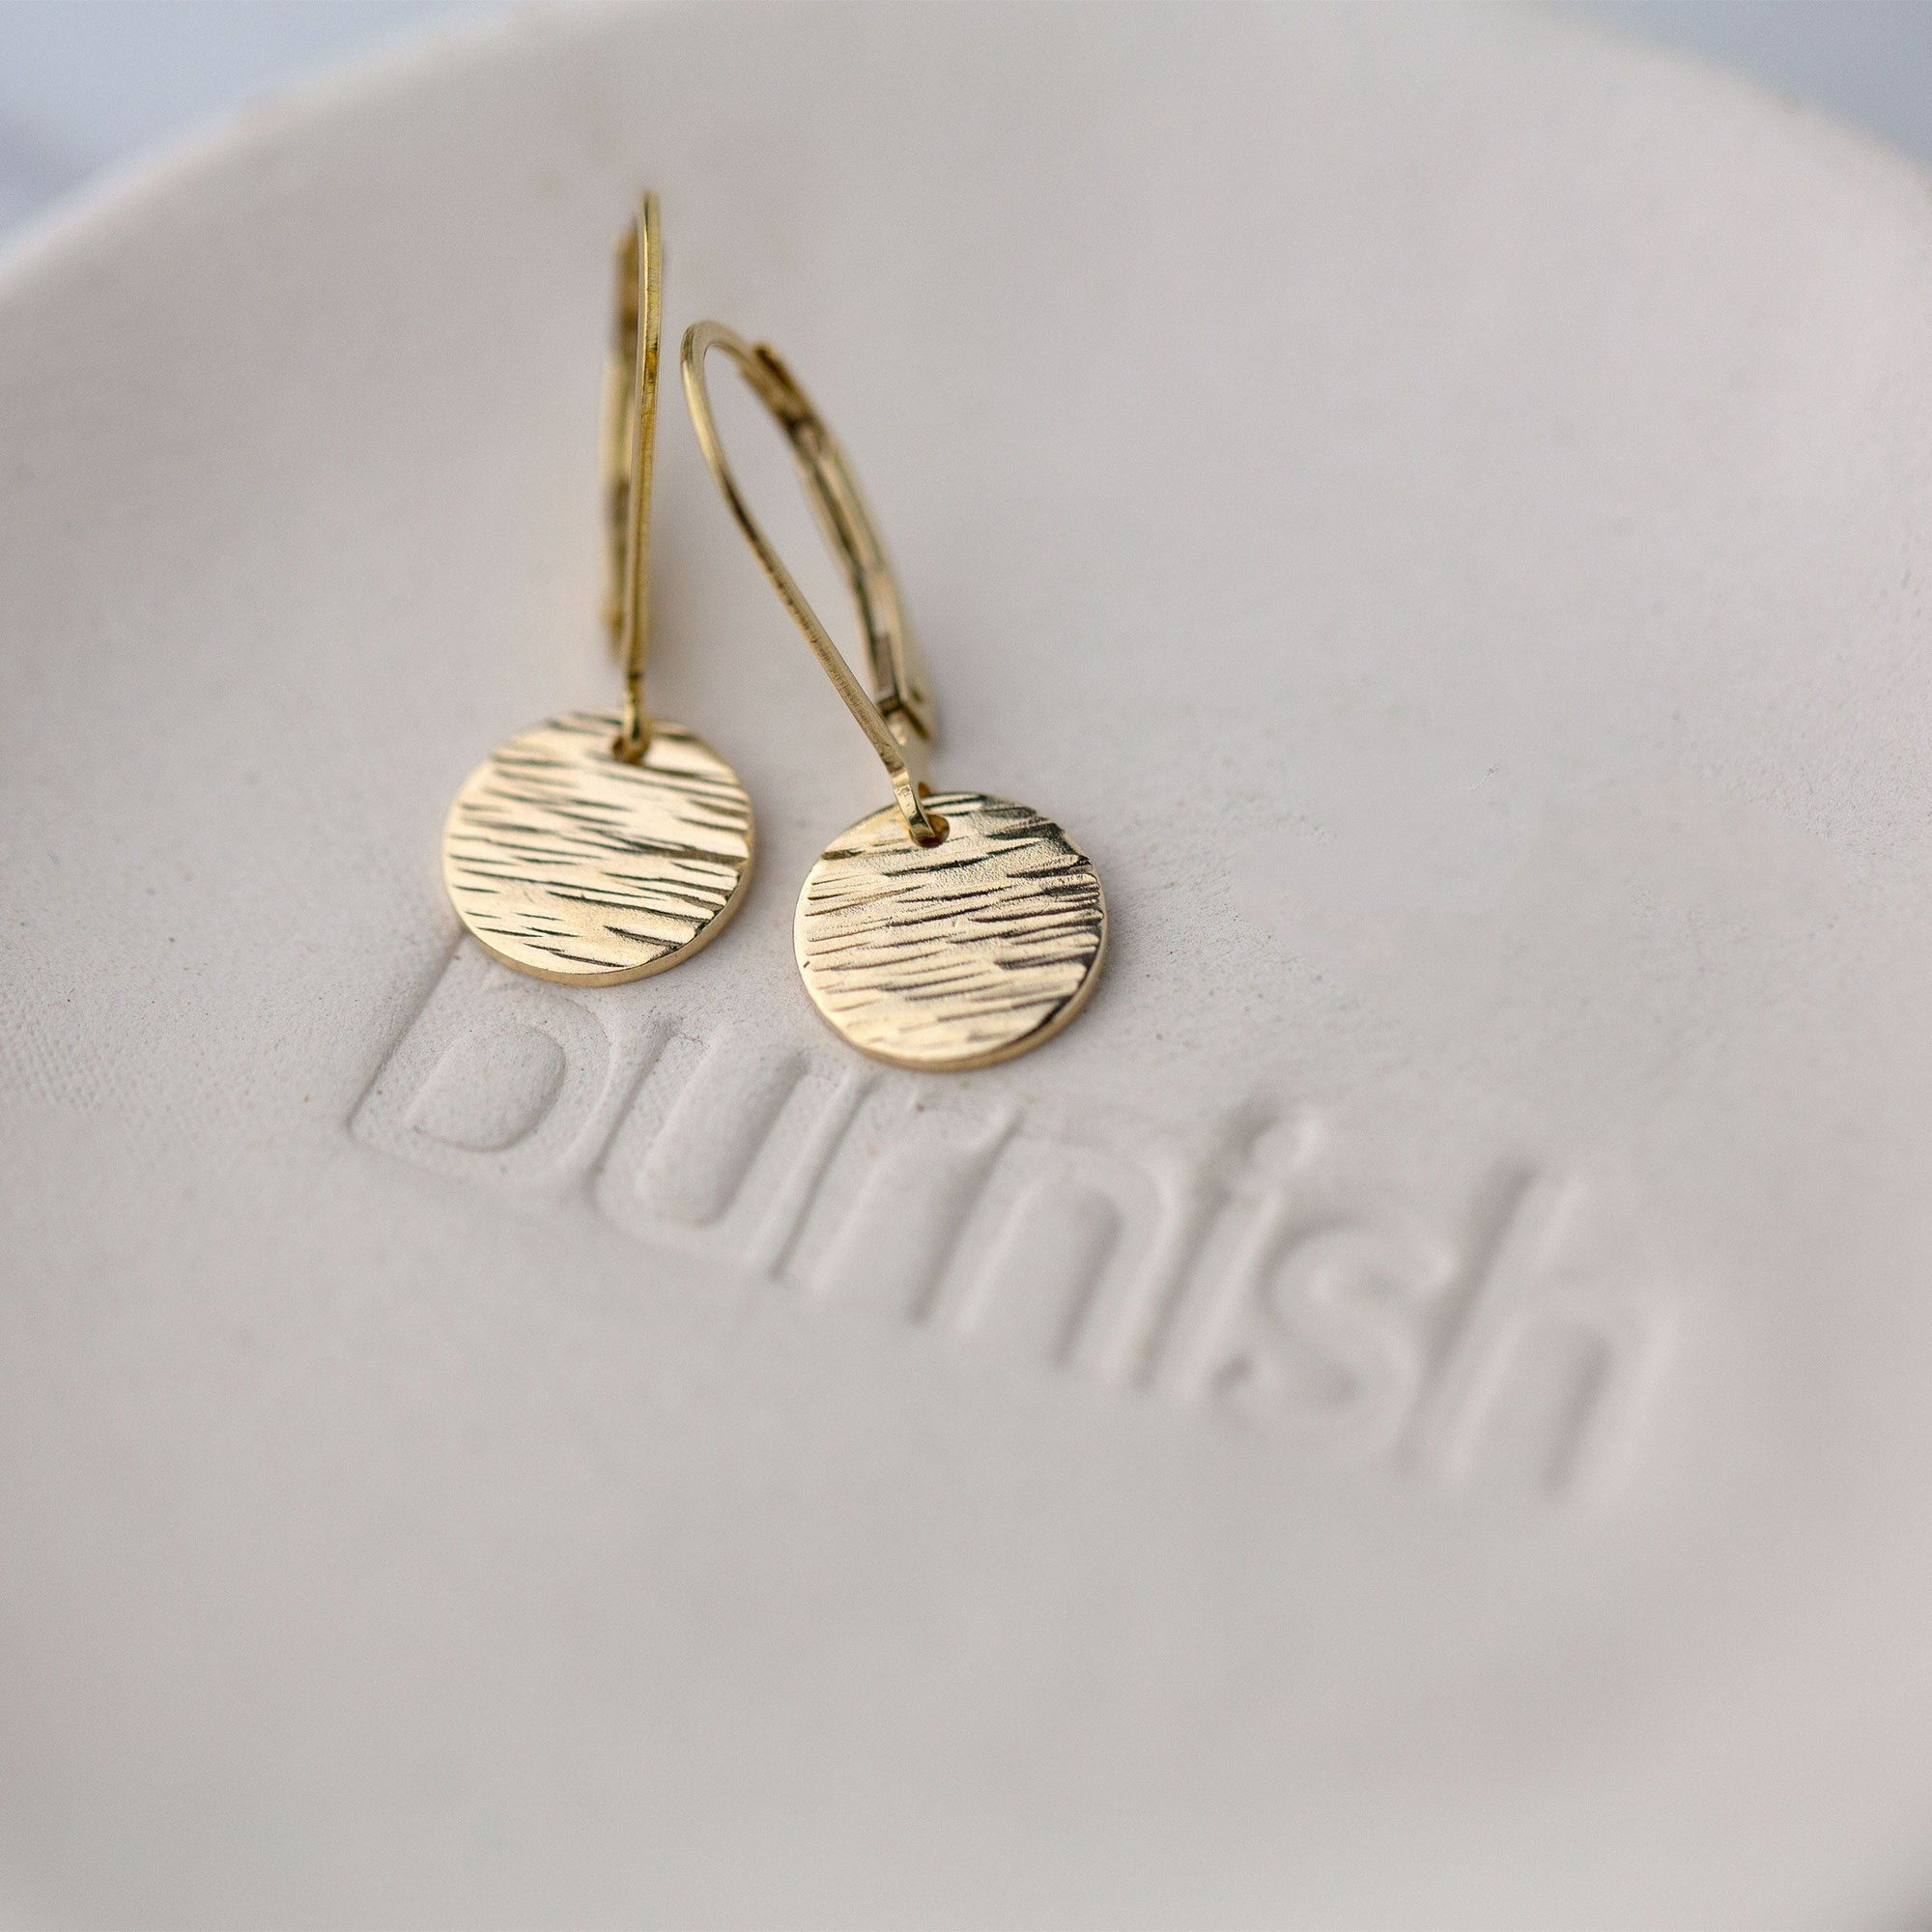 Gold Textured Disc Lever-back Earrings - Handmade Jewelry by Burnish